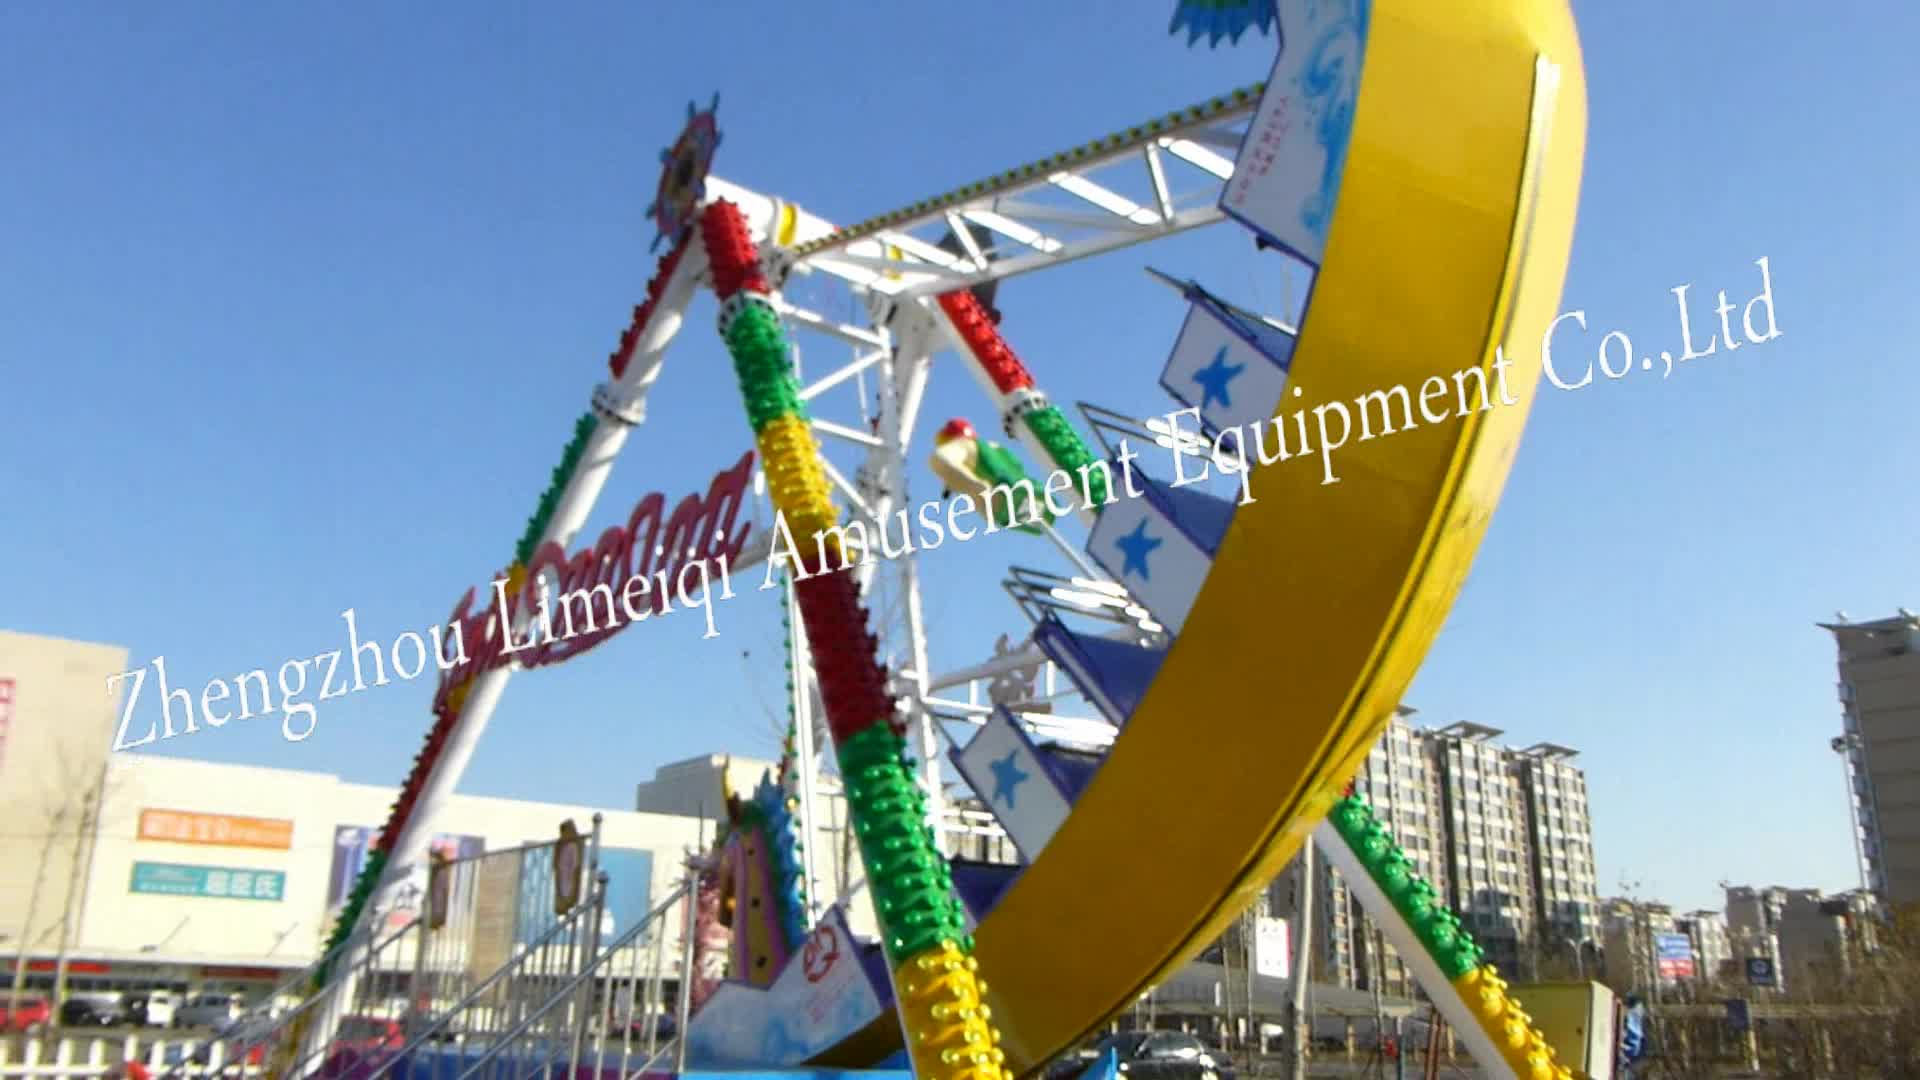 12 Swing Pirates Ship Outdoor Park Equipment Big Pendulum Ship Shaped